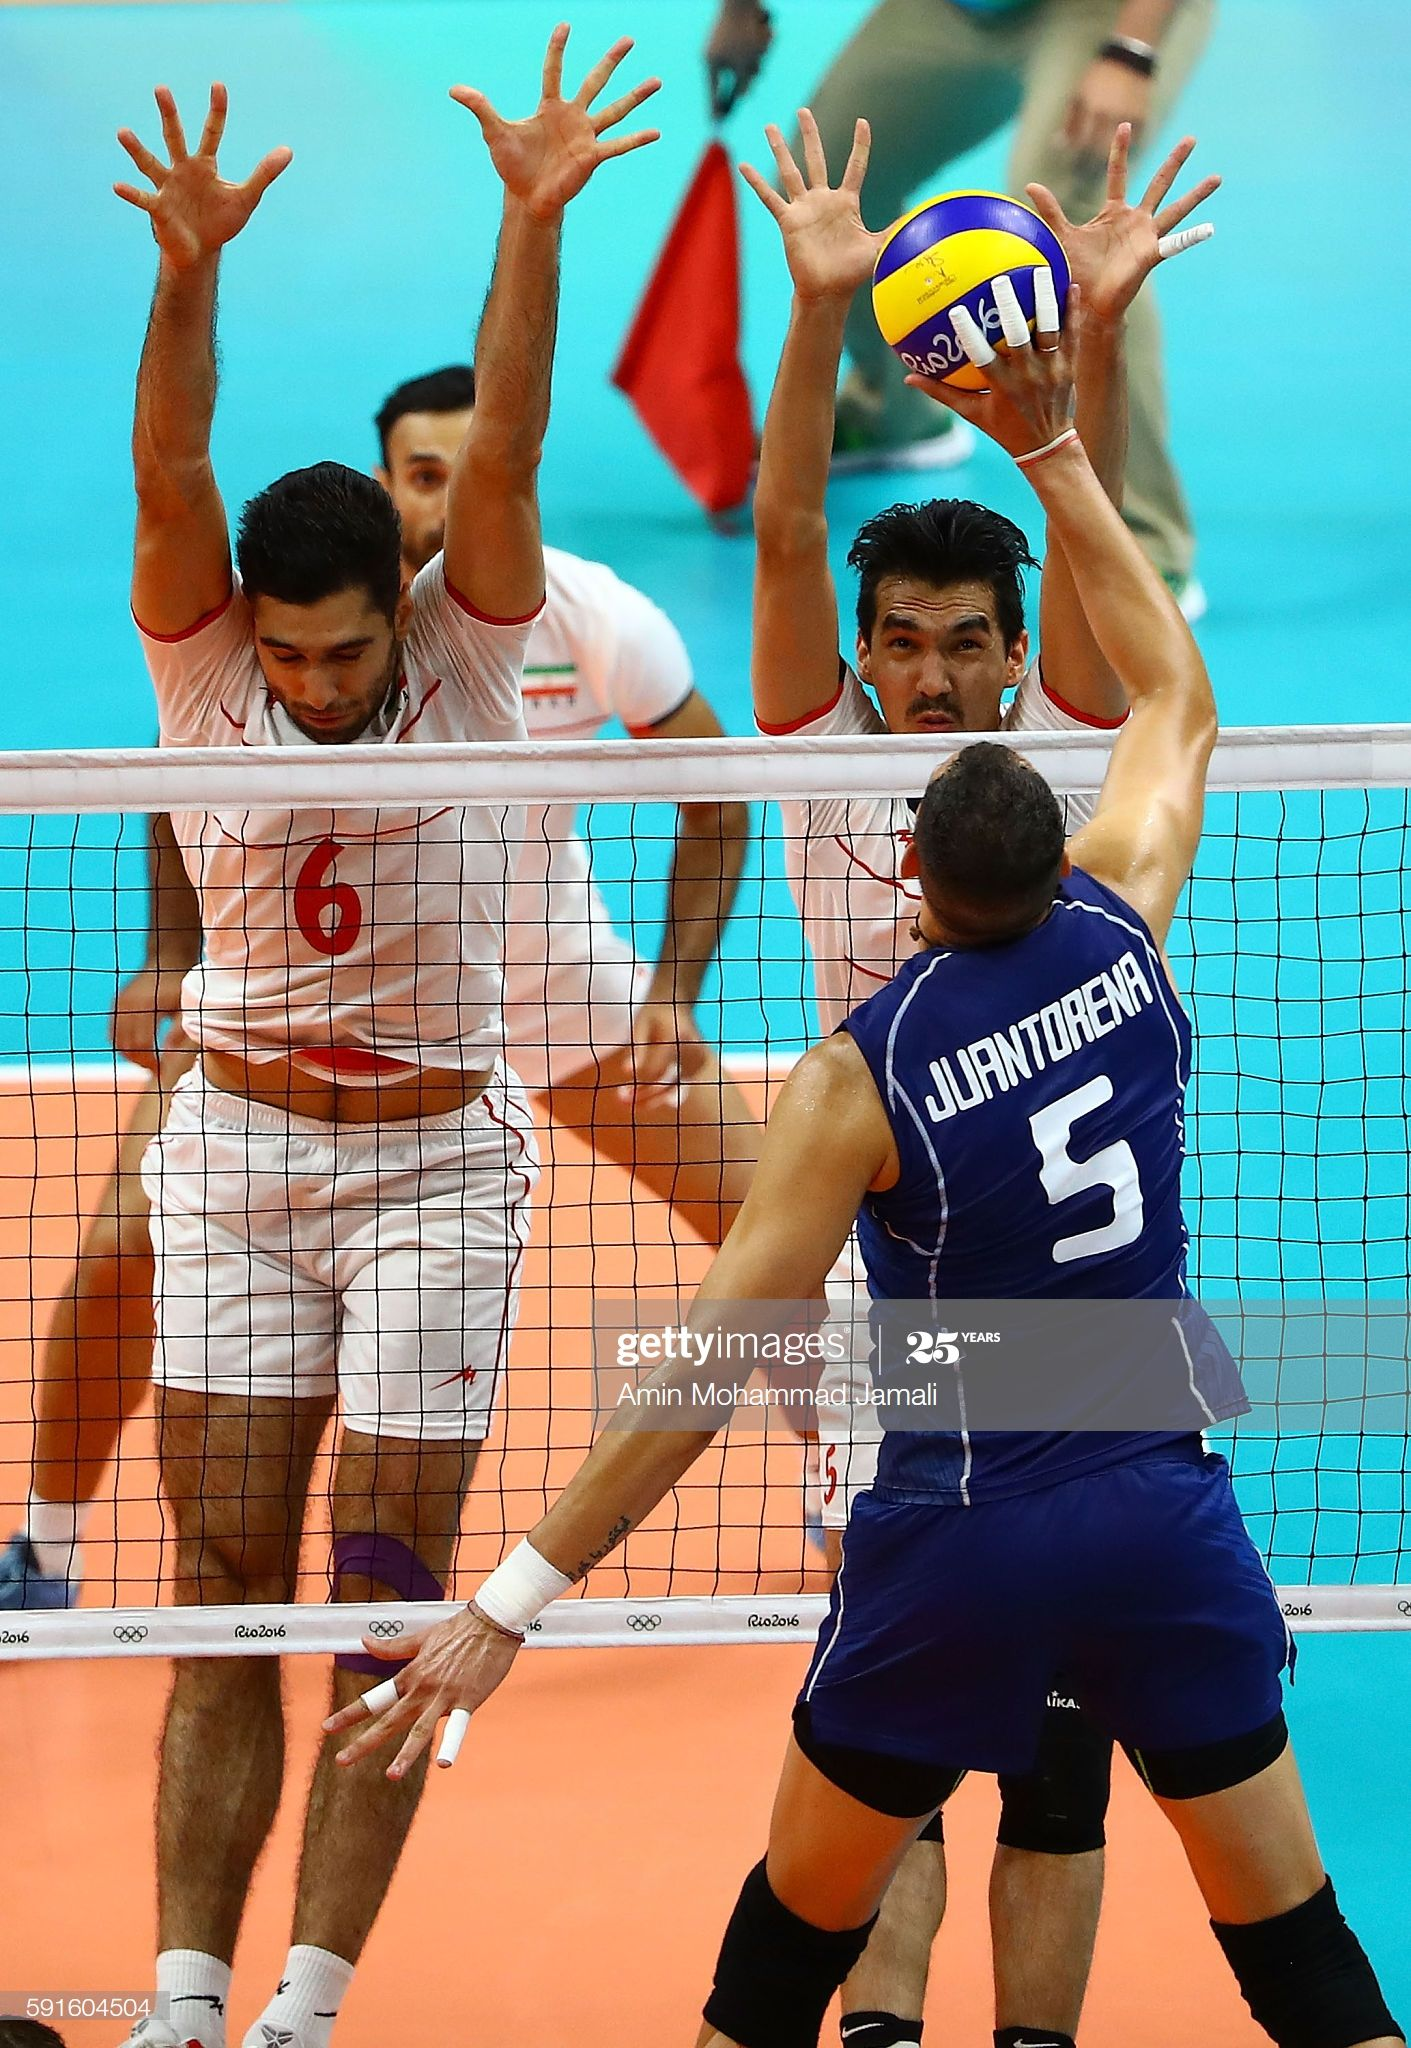 Farhad Ghaemi And Seyed Mohammad Mousavi Eraghi Of Iran Defend In 2020 Olympic Games Olympics 2016 Rio Olympics 2016